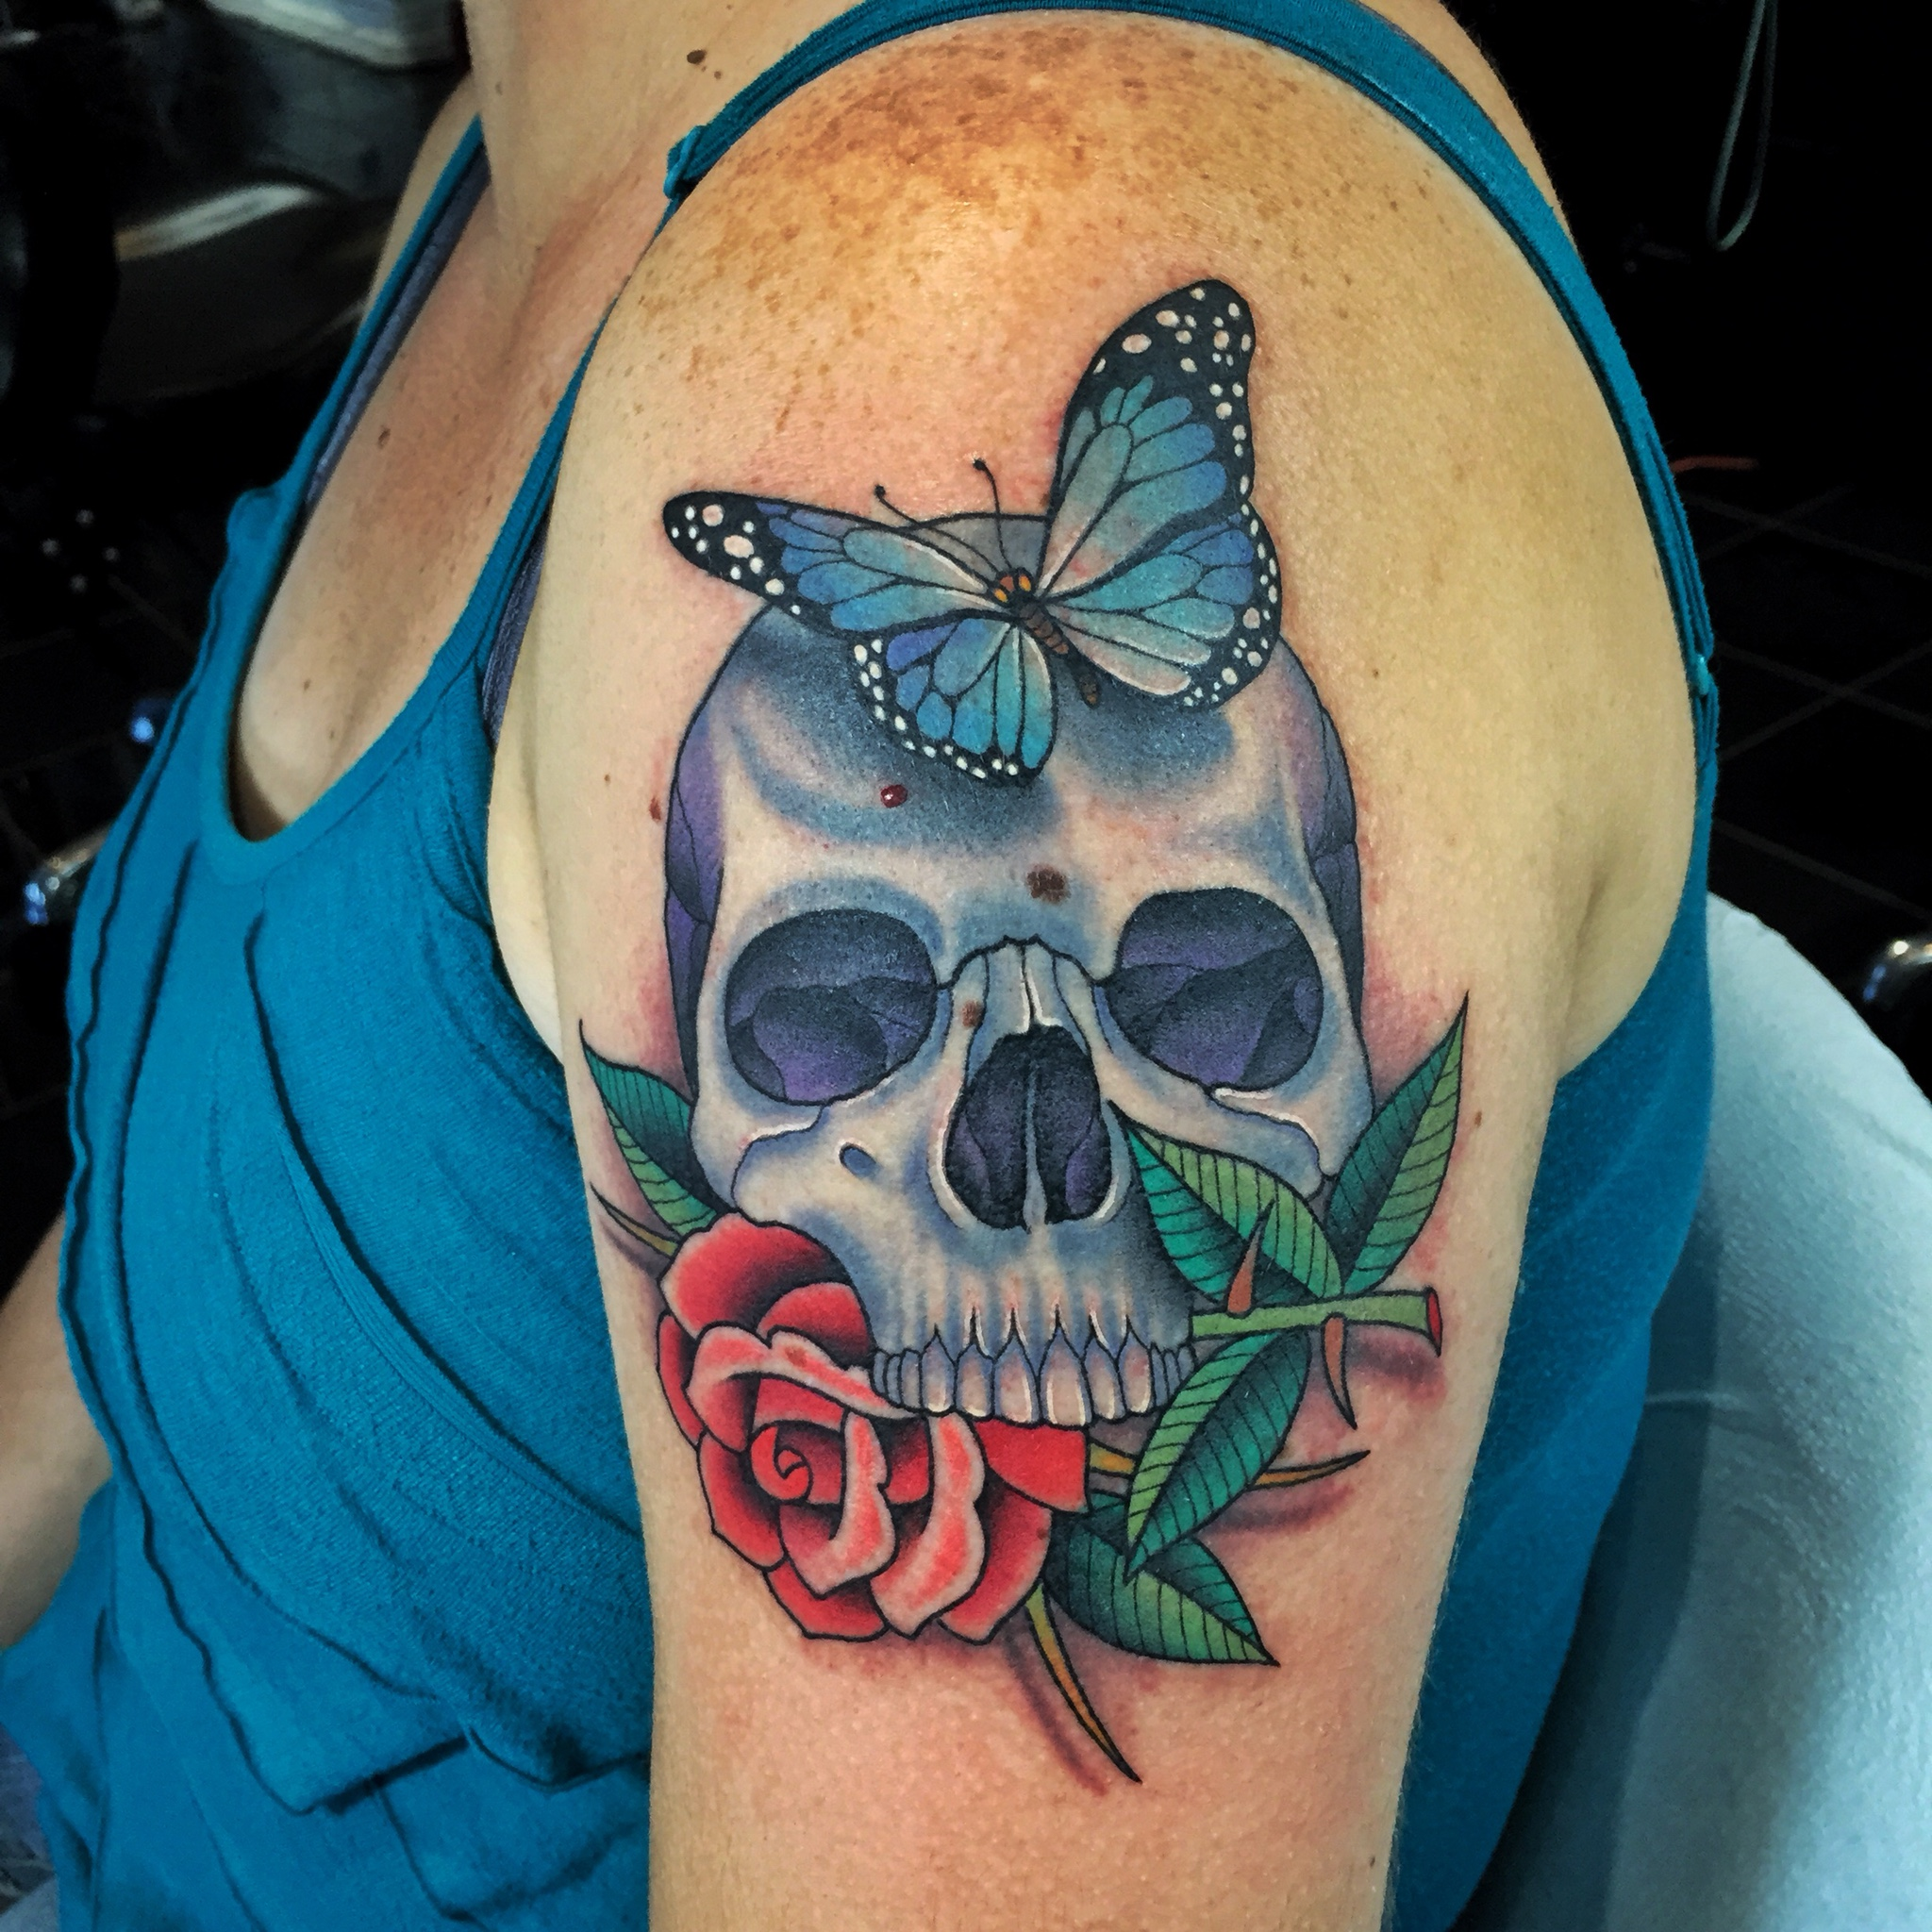 Skull + Butterfly + Rose Tattoo